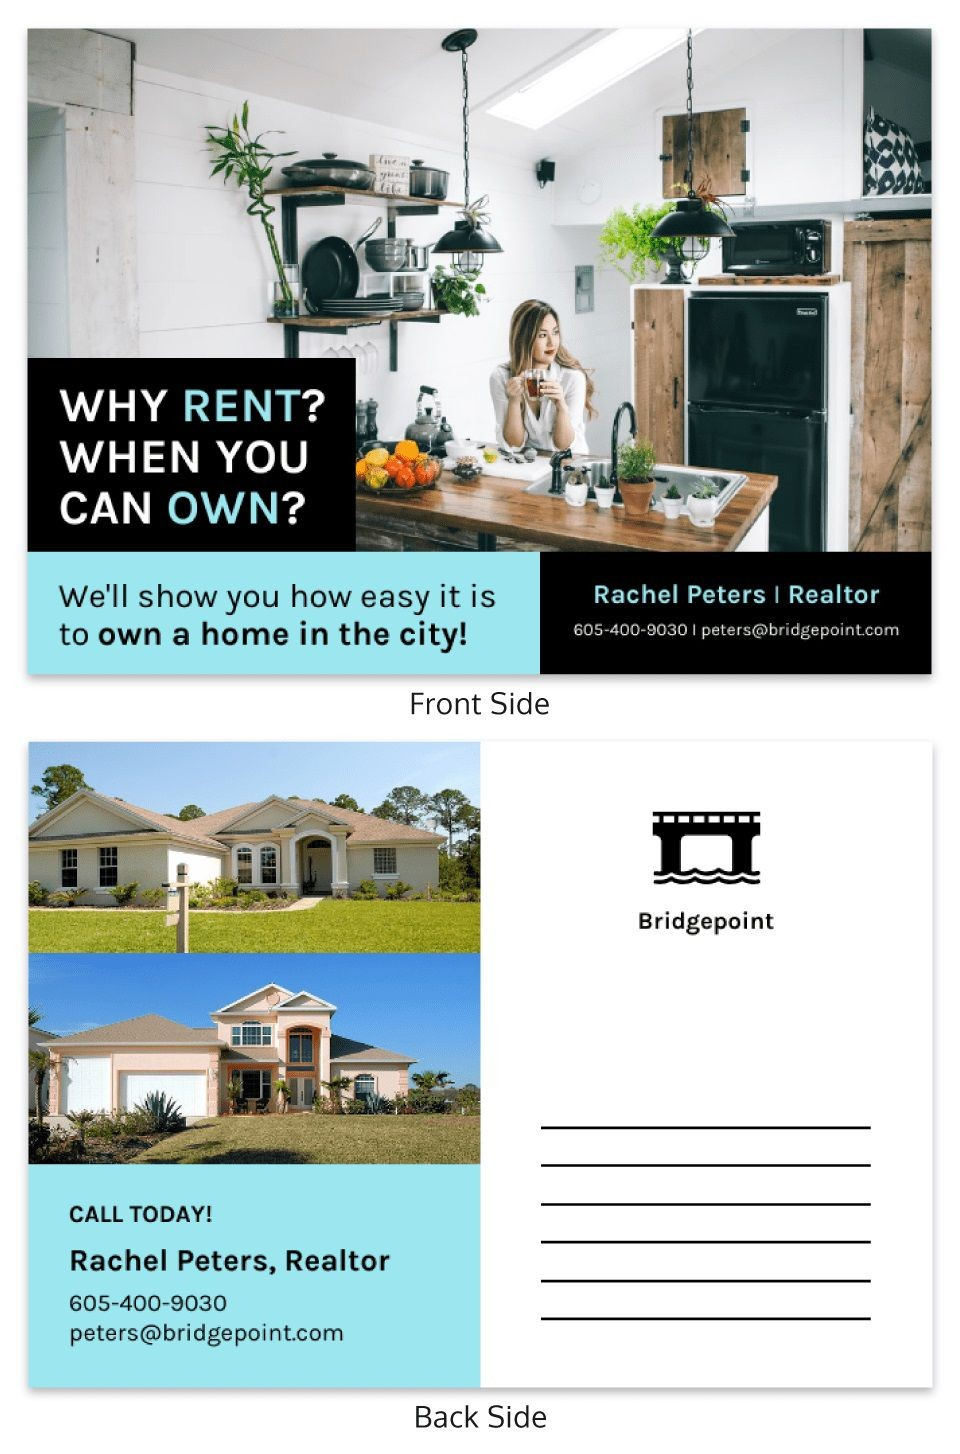 001 Fascinating Real Estate Postcard Template Design  Agent Free Microsoft Word Investor960